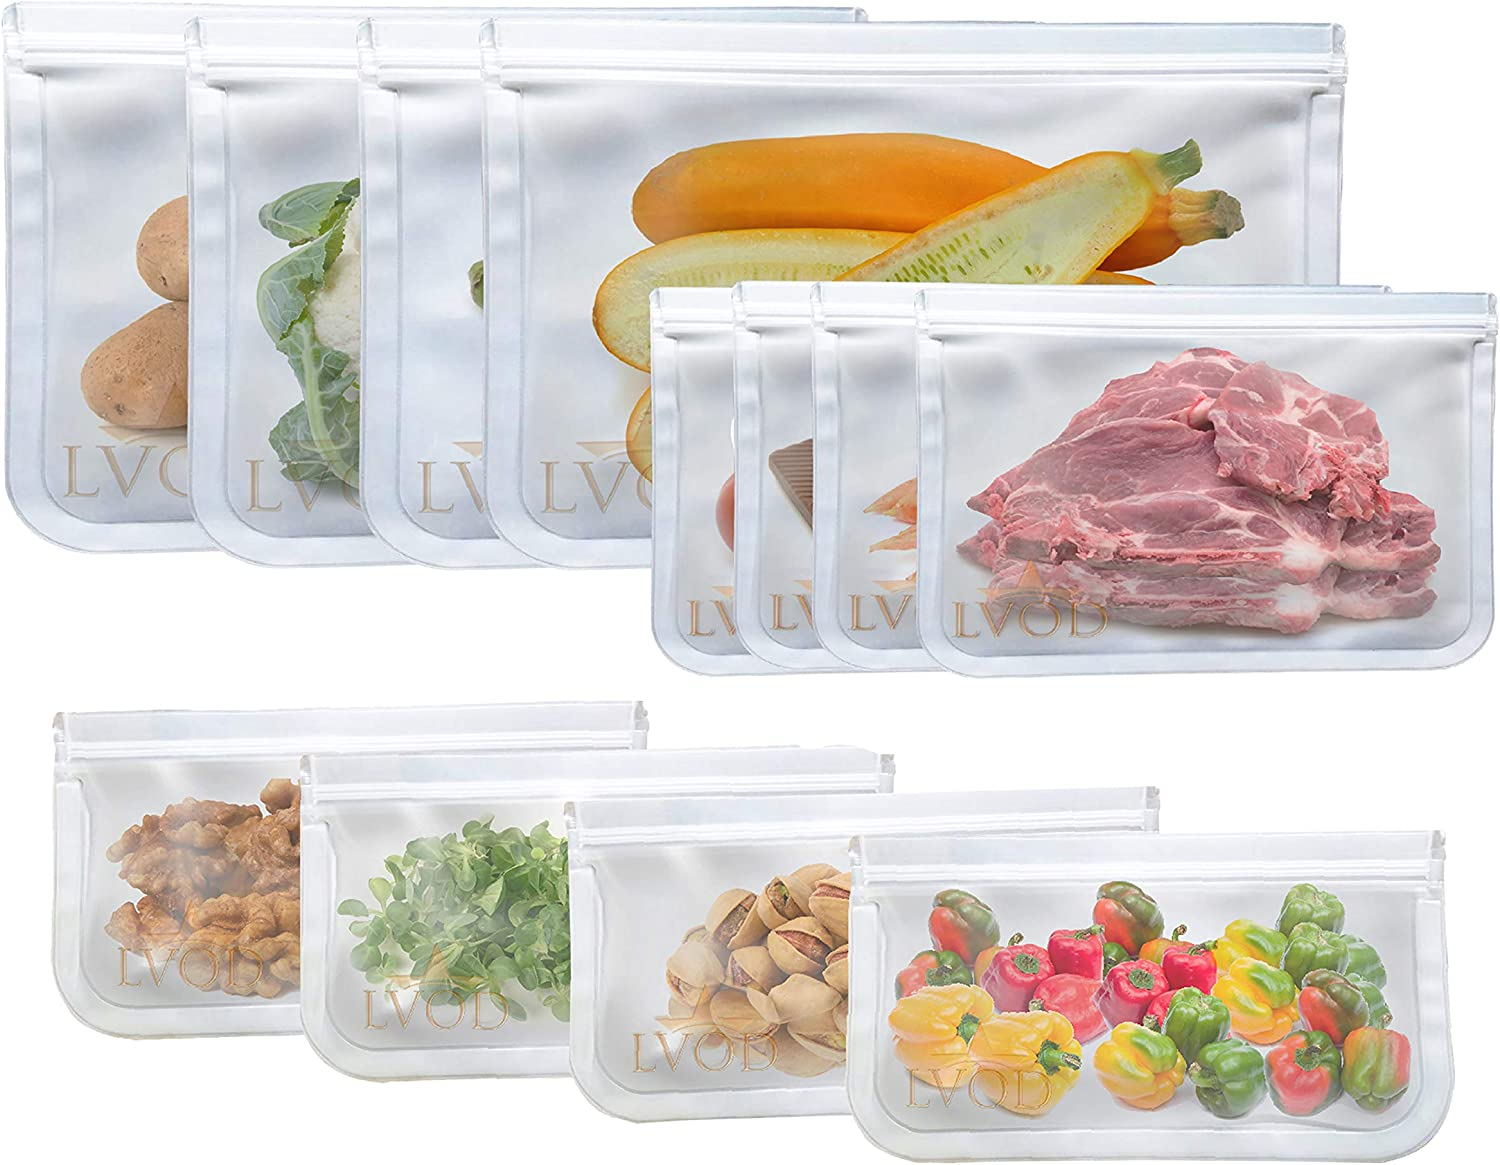 LVOD Reusable Storage Bags 12 Pack, Washable, PVC BPA free Extra Thick Leakproof PEVA & Silicon Special material Freezer Bags for Food, Sandwich, Snacks, Vegetables, Meat & strong Zip lock Seal